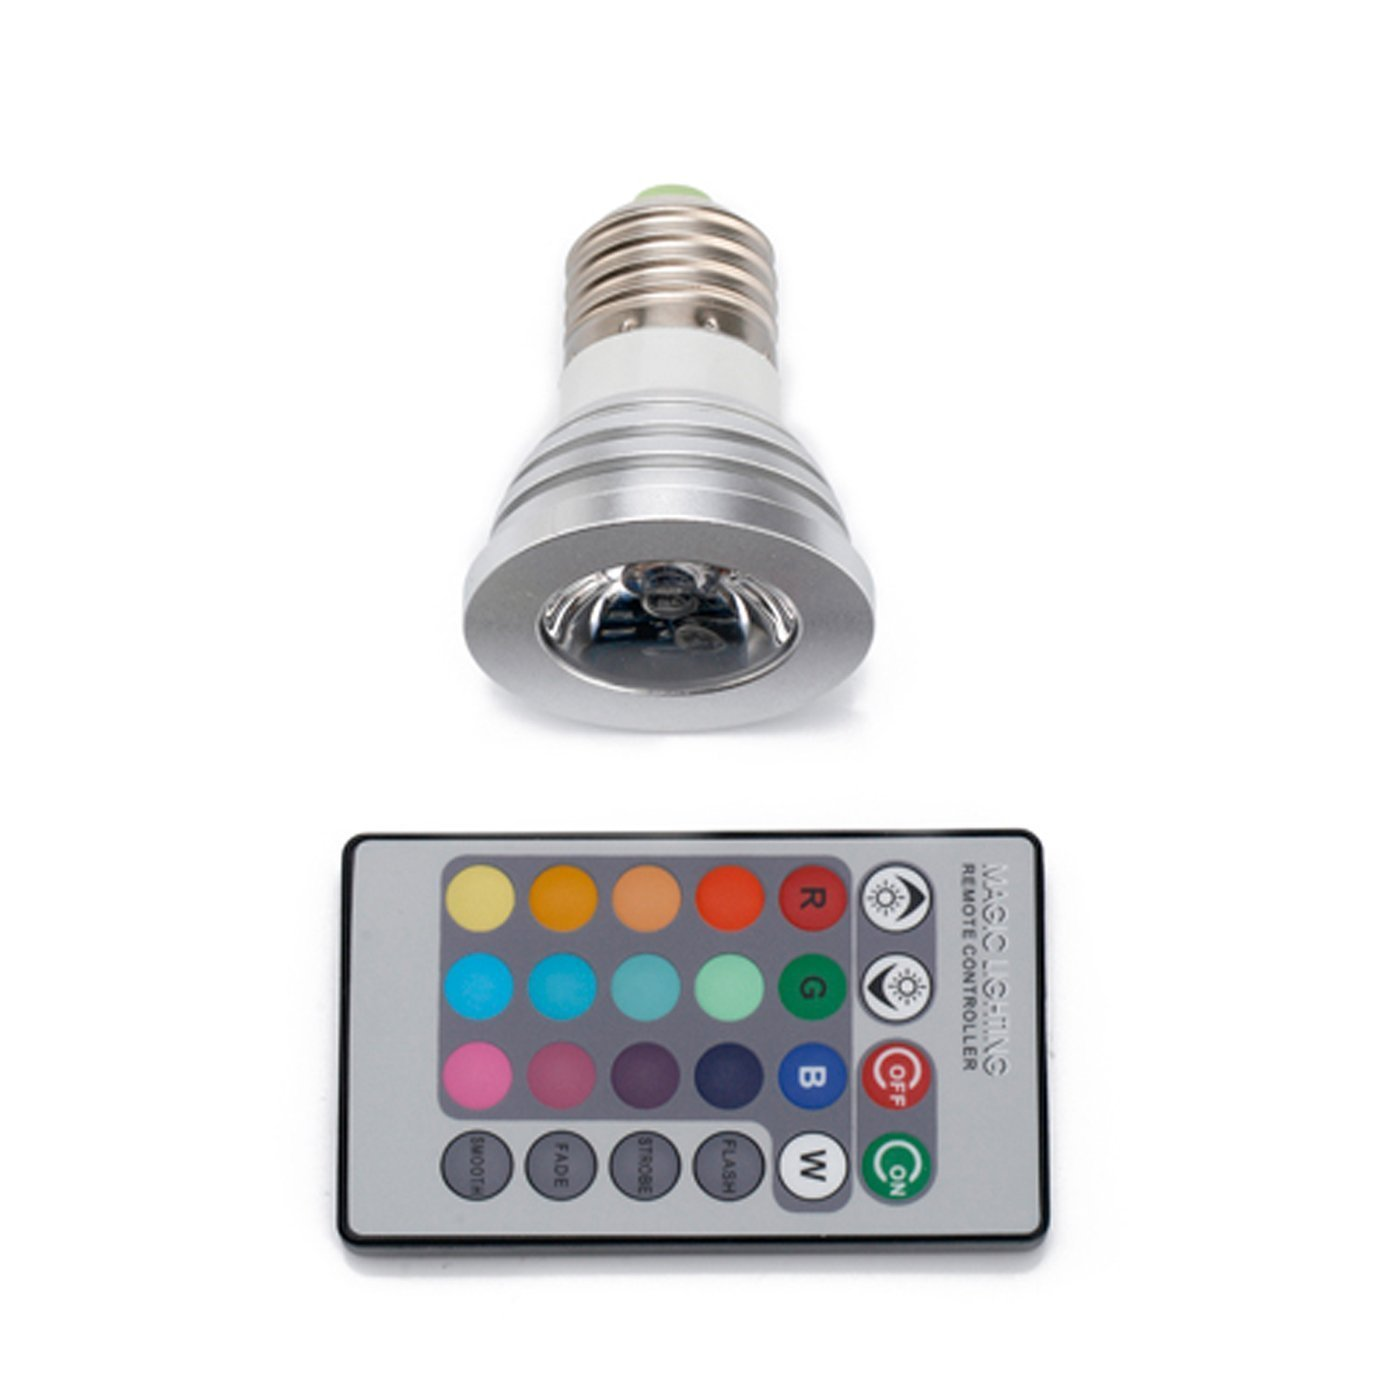 eaglelight color changing led light bulb and remote